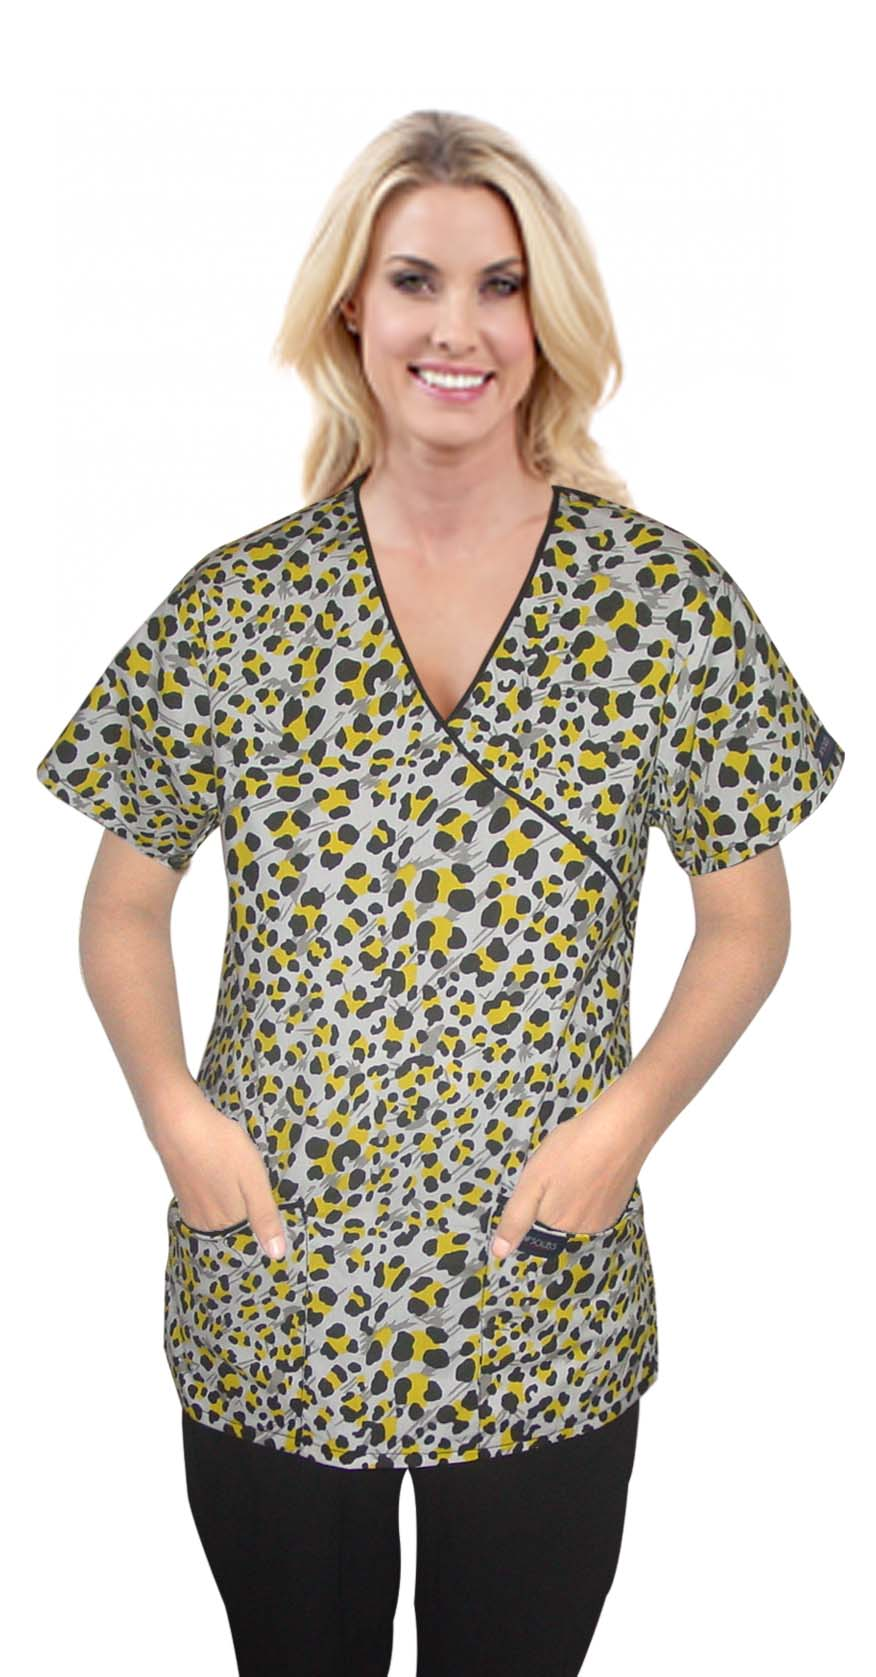 Printed scrub set mock wrap 5 pocket half sleeve in yellow and black with black piping (top 3 pocket with bottom 2 pocket boot cut)